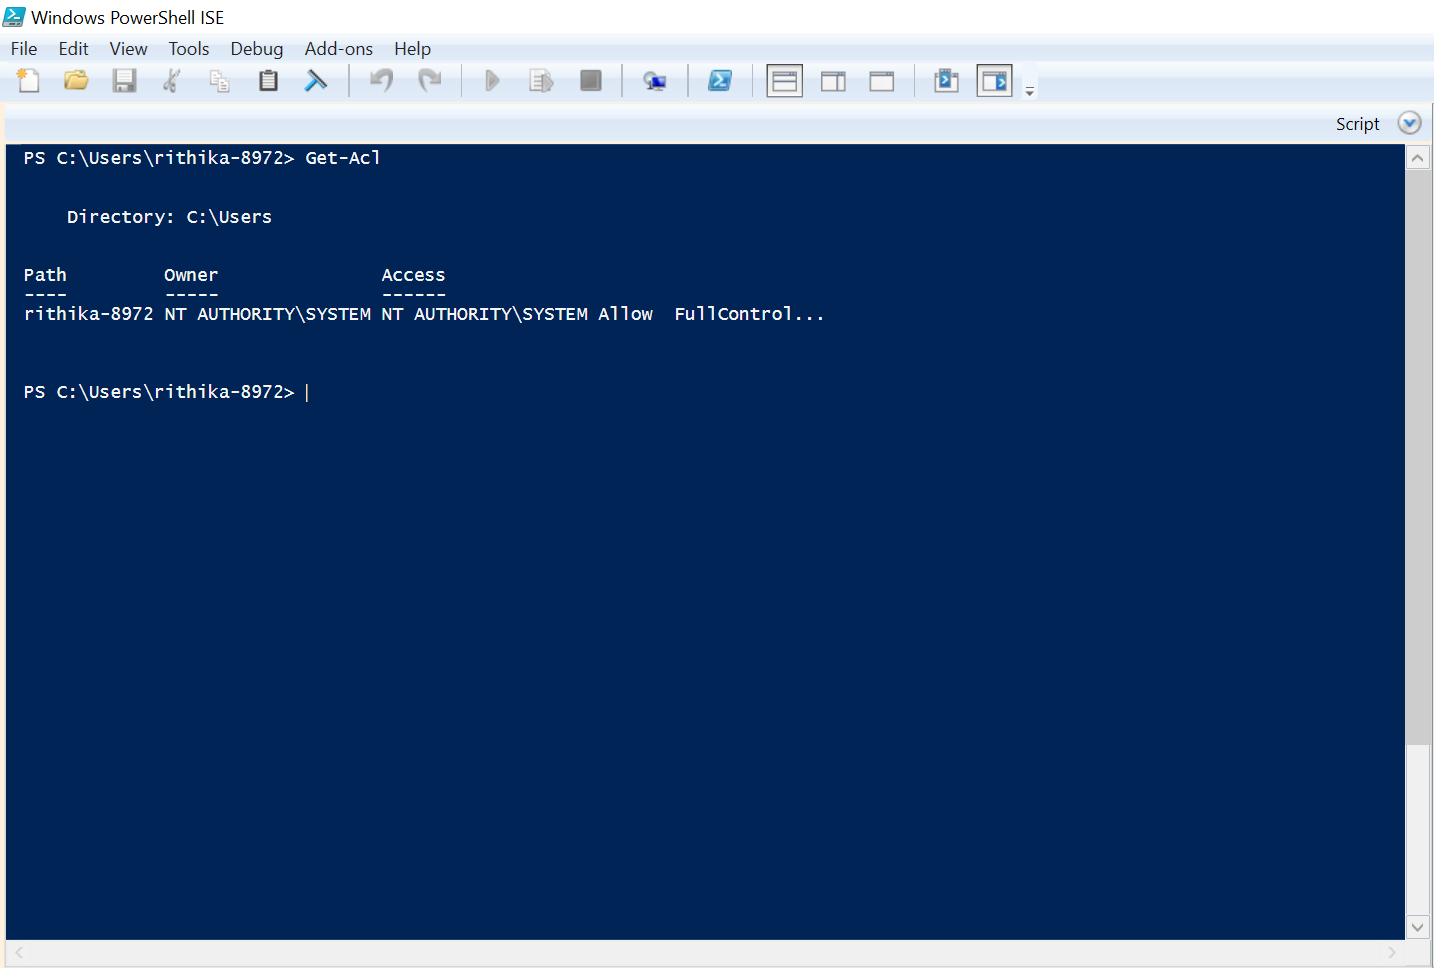 powershell-script-for-security-1